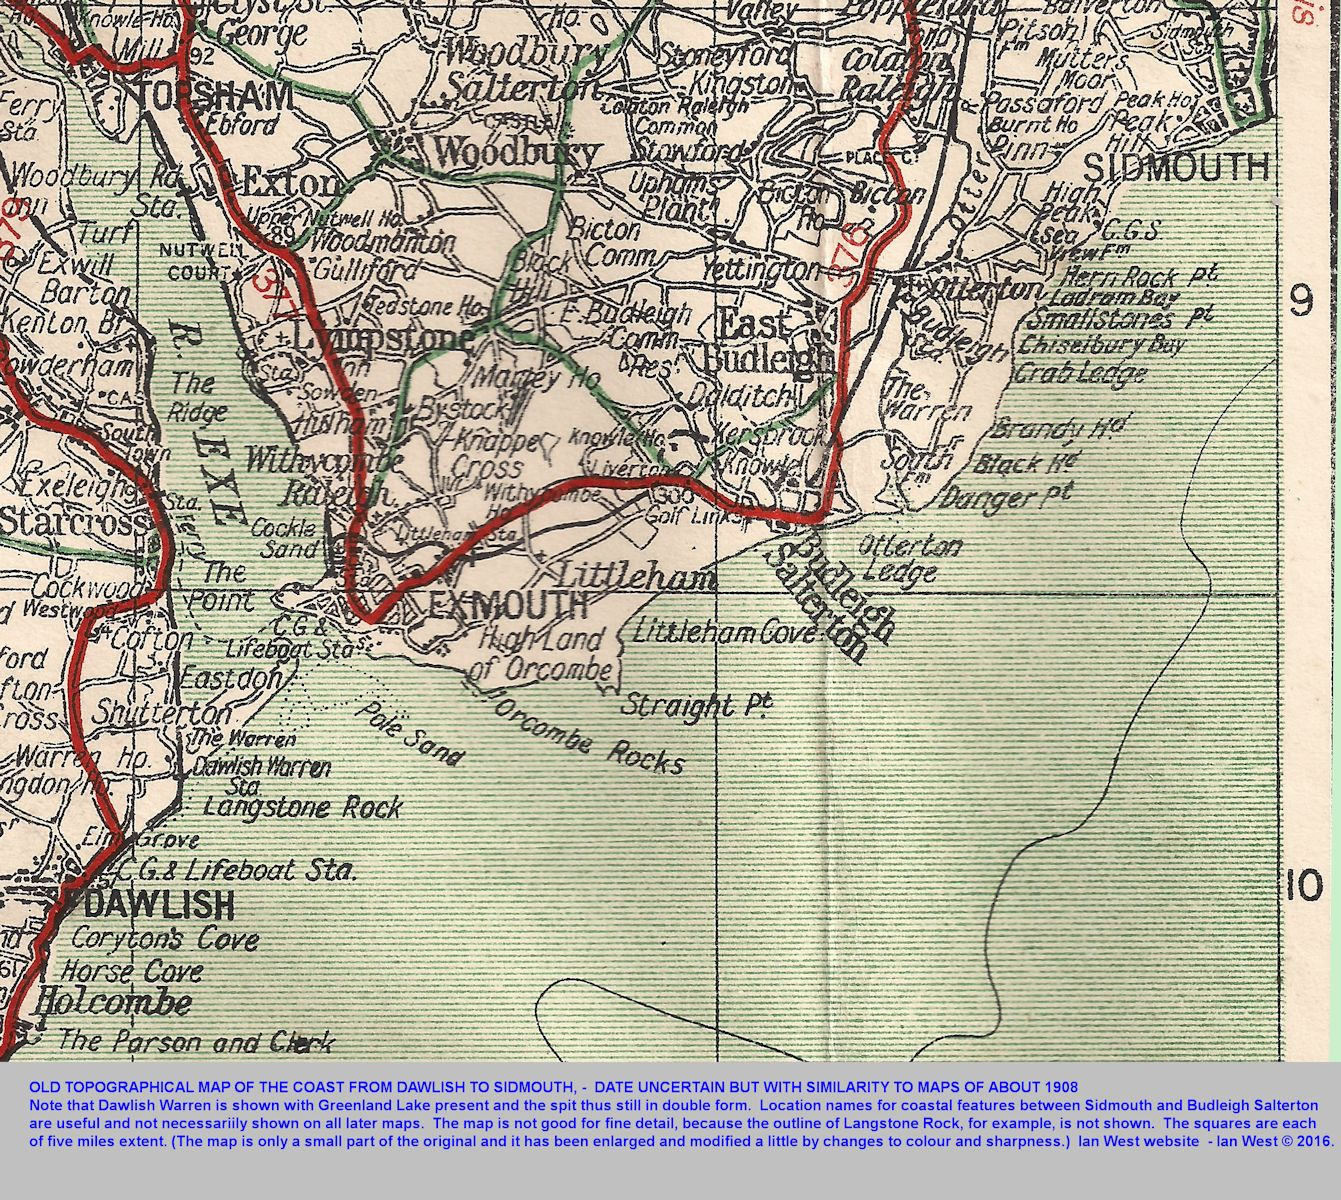 An old topographic map of the coast from Sidmouth to Dawlish, Devon, including Ladram Bay, Budleigh Salterton, Exmouth and Dawlish Warren